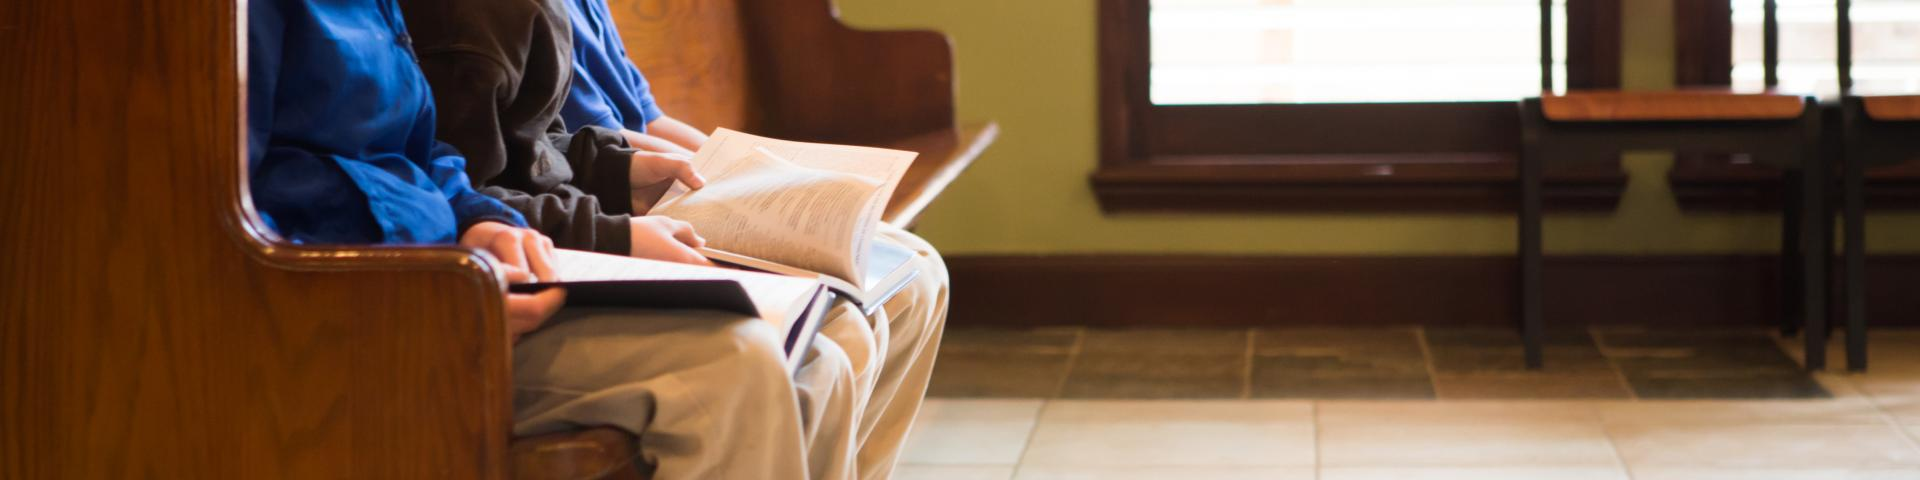 cropped image of boys in a pew reading a ther missalettes